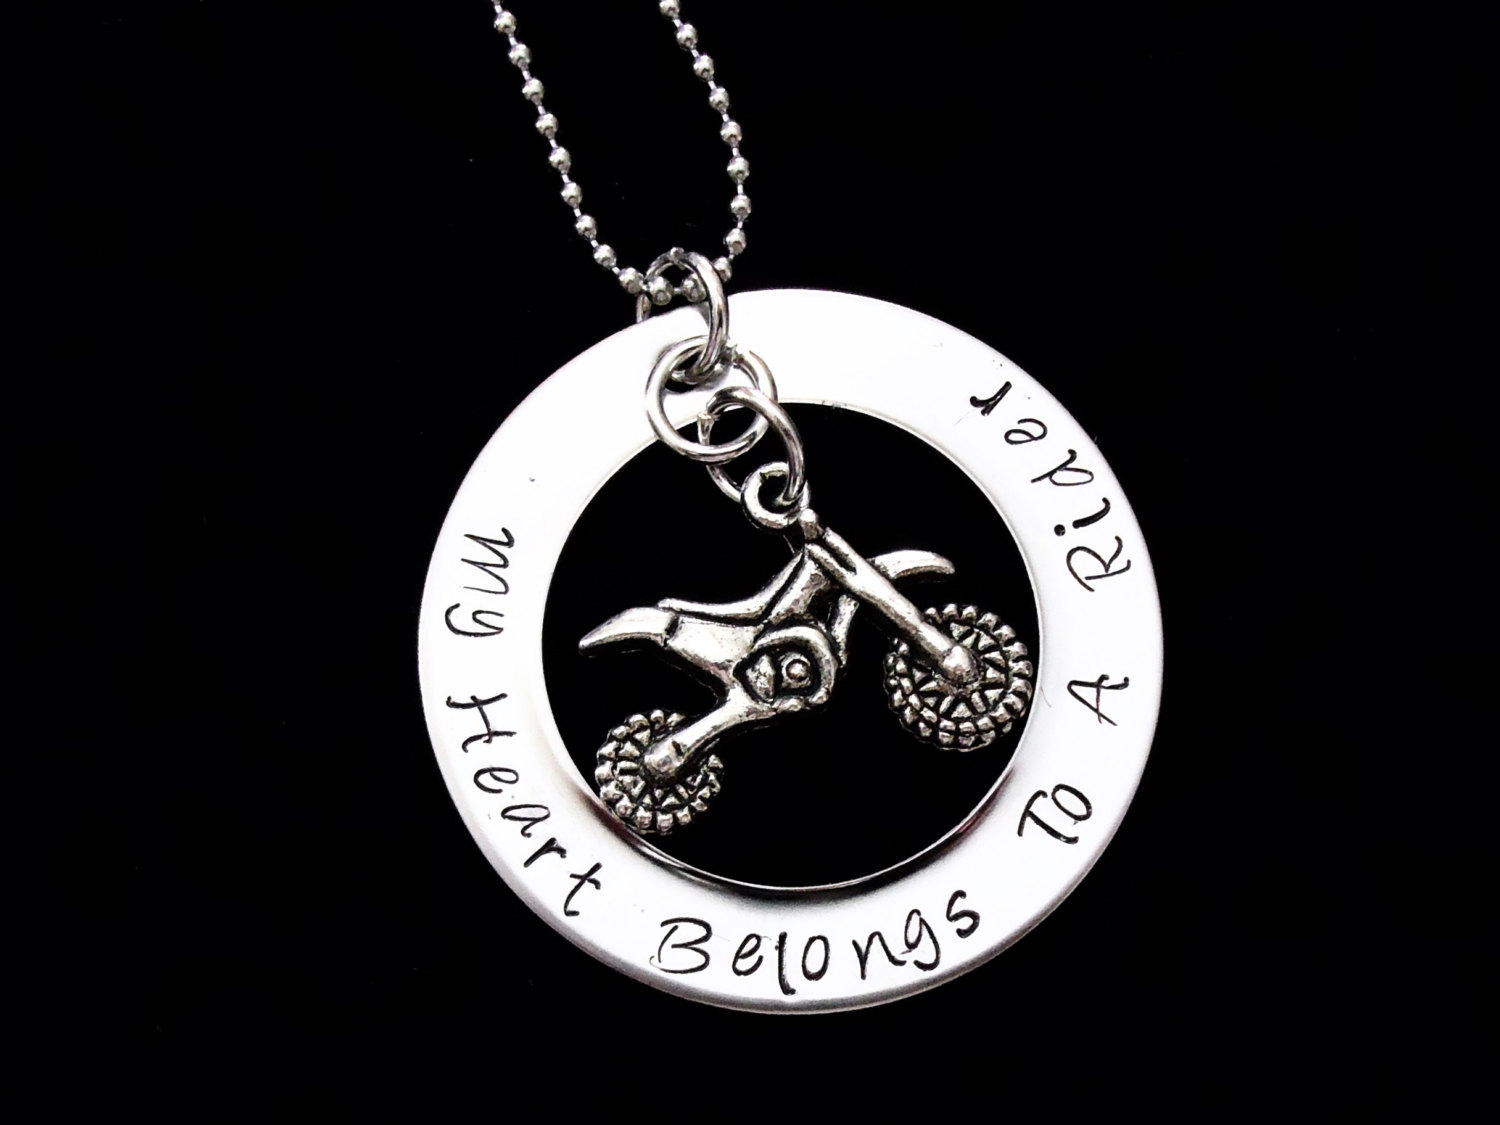 cheerleading stamped cheer untitled necklace pendant cheerleaders product hand